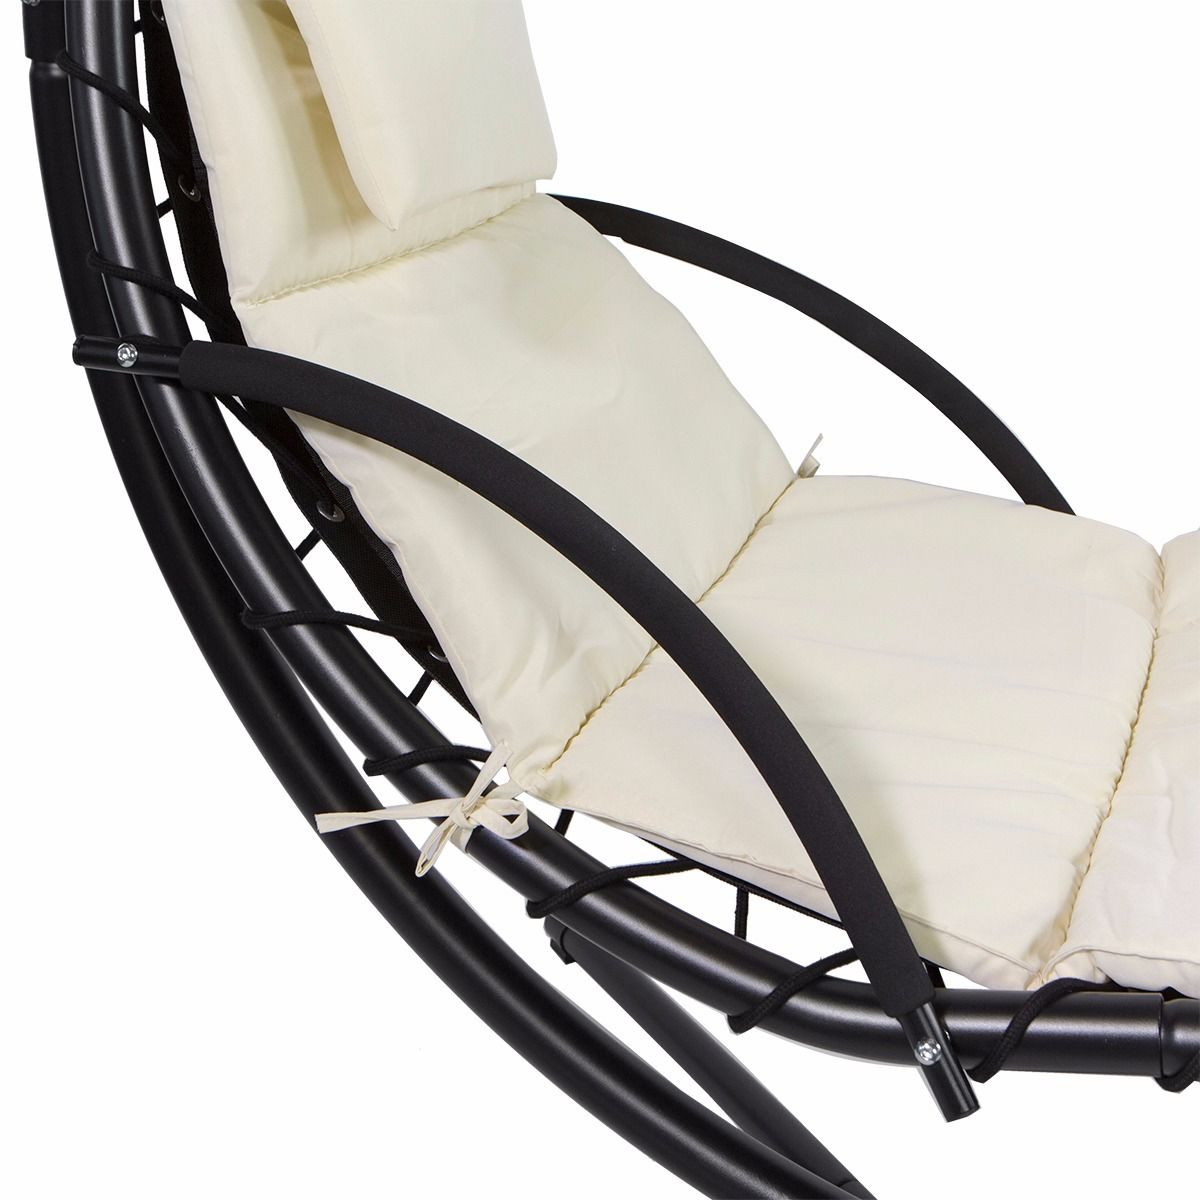 Barton Patio Hanging Helicopter dream Lounger Chair Stand ... on Hanging Helicopter Dream Lounger Chair id=58055